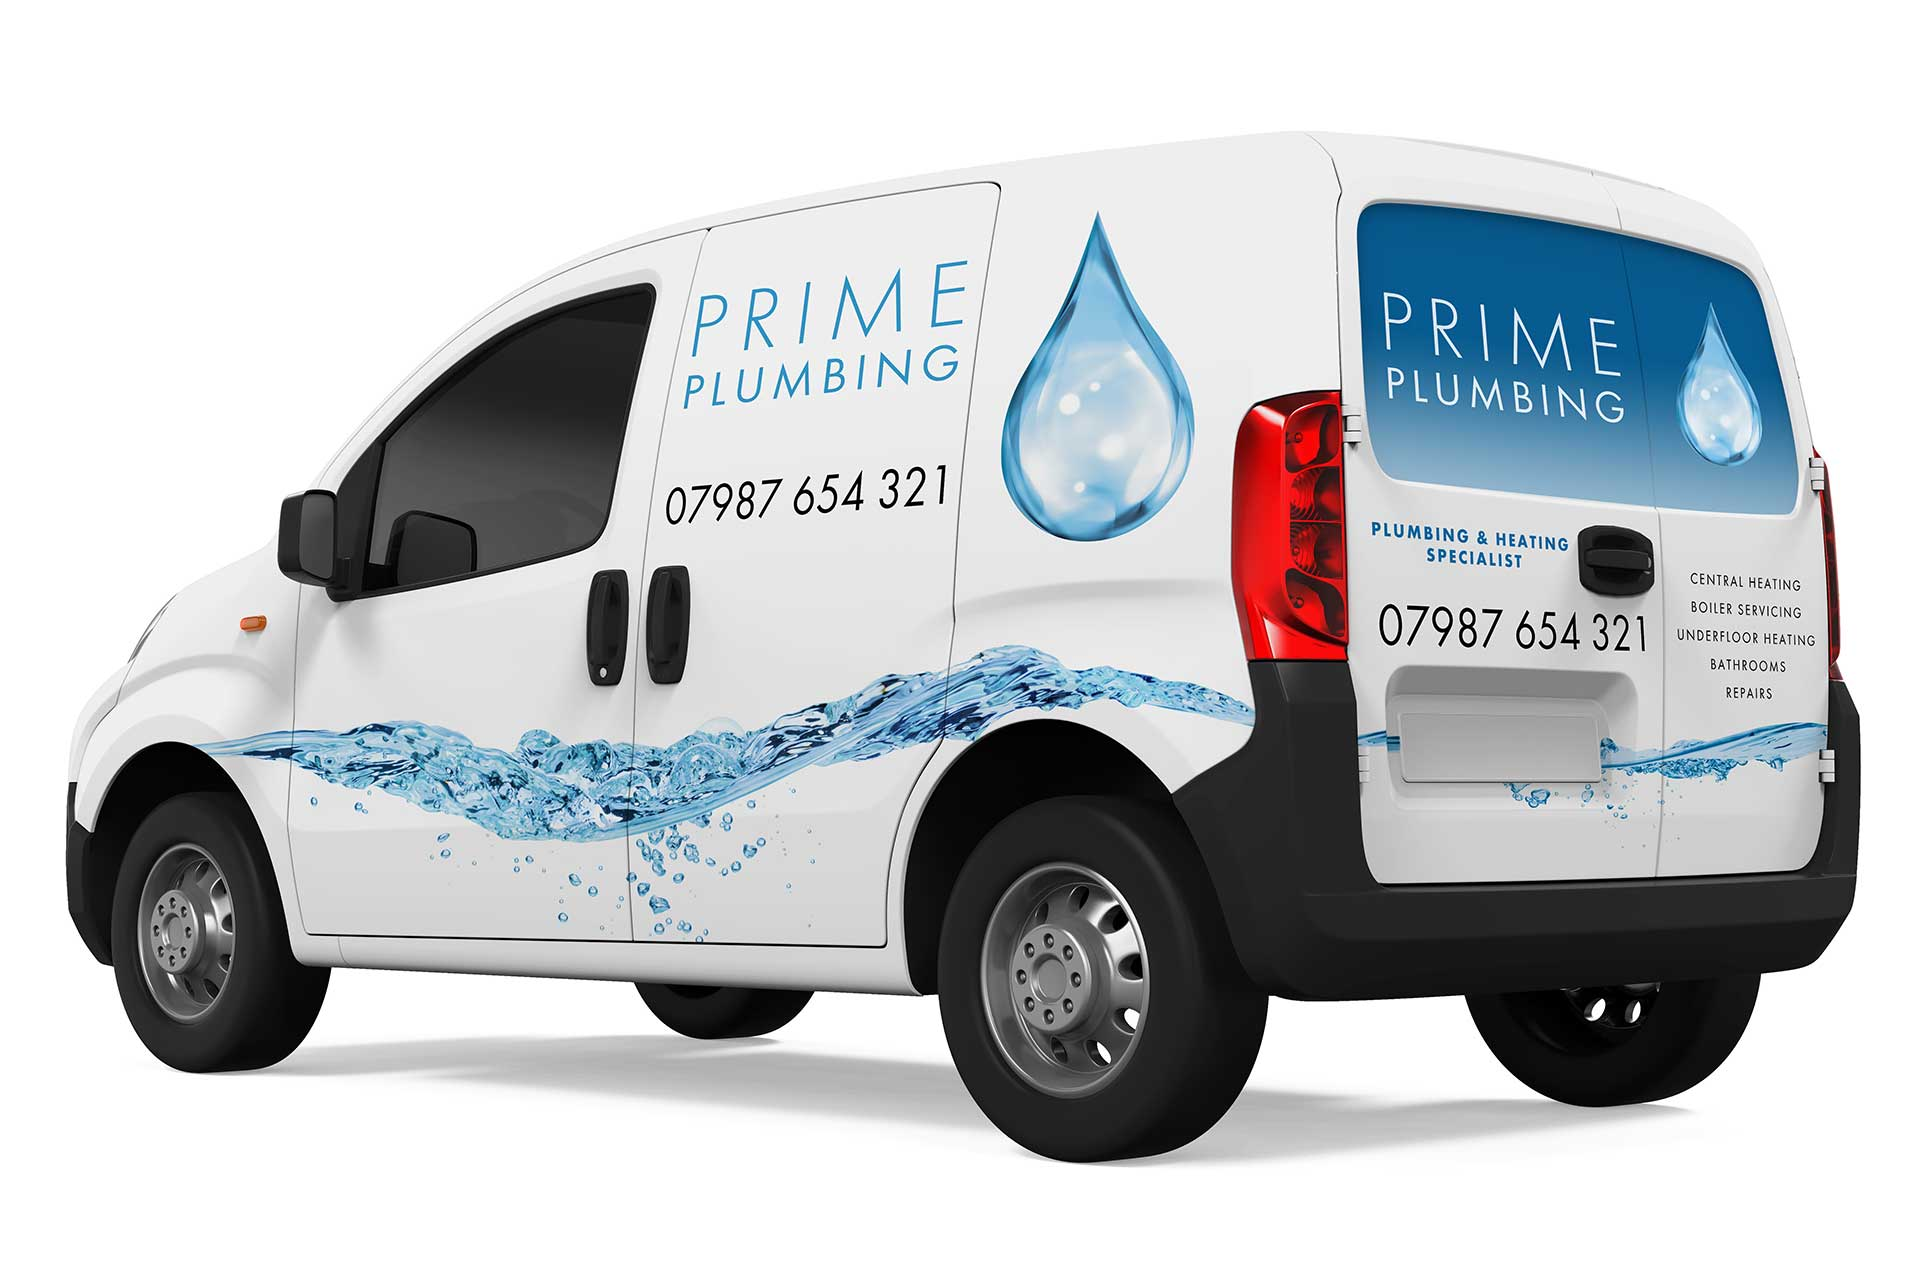 Vehicle Wraps - Graphic Design and Printing - Norwich Designer